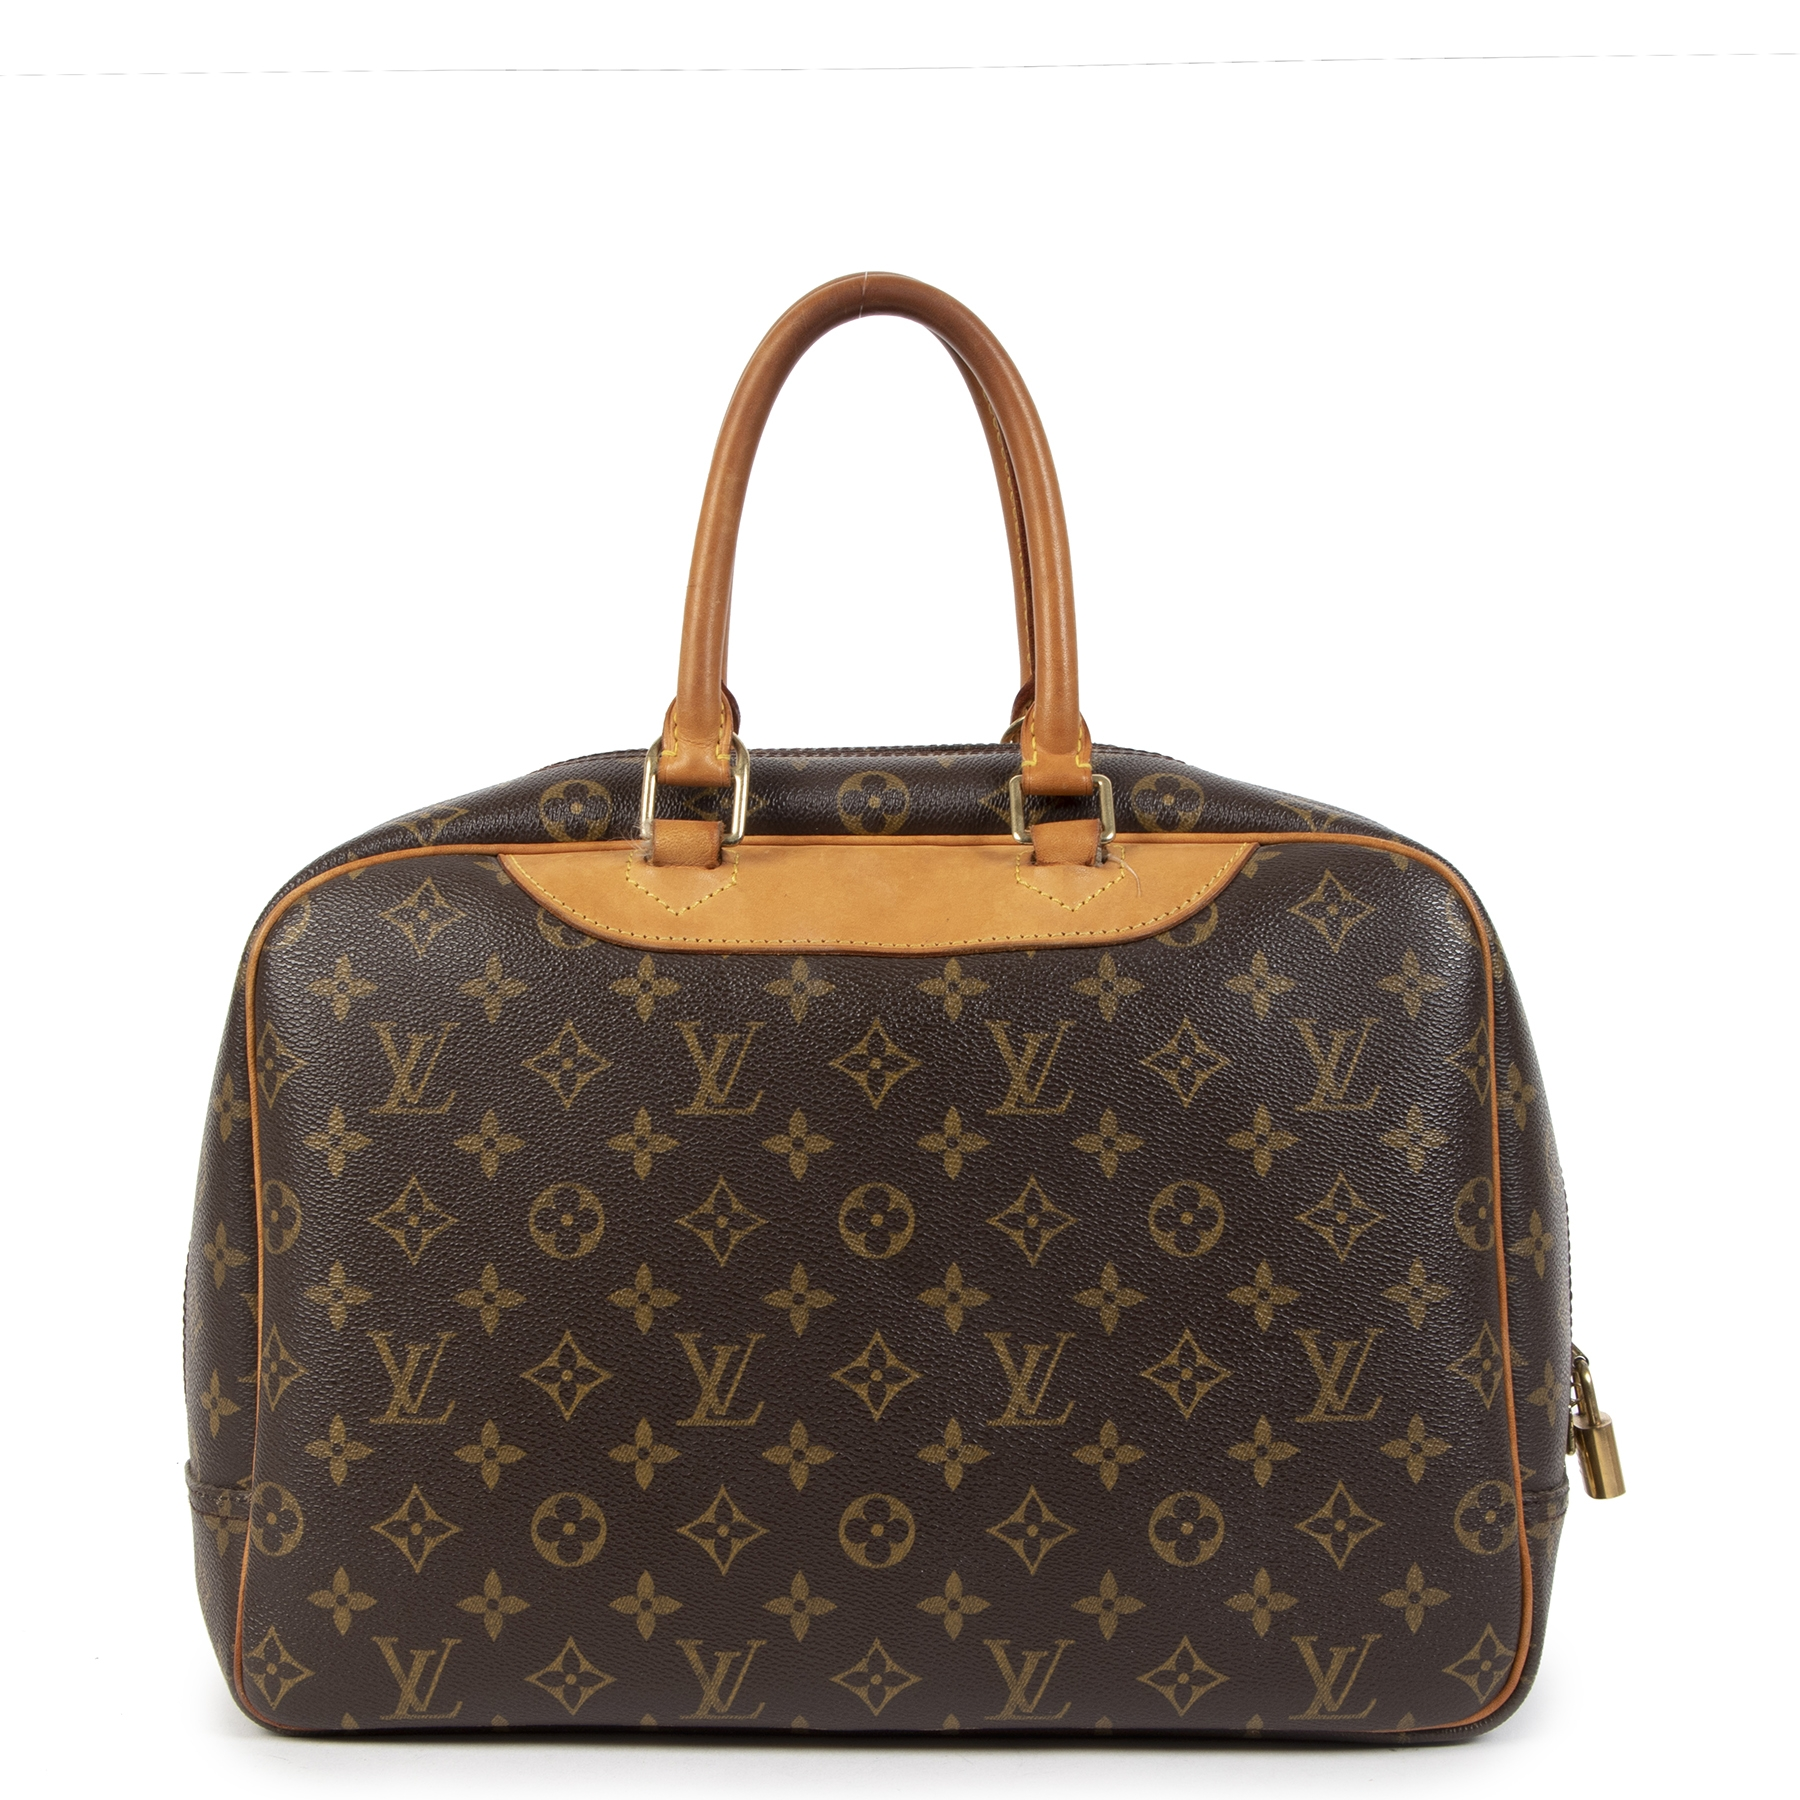 Authentic secondhand Louis Vuitton Trouville Monogram Bag designer bags designer brands fashion luxury vintage webshop safe secure online shopping worldwide shipping